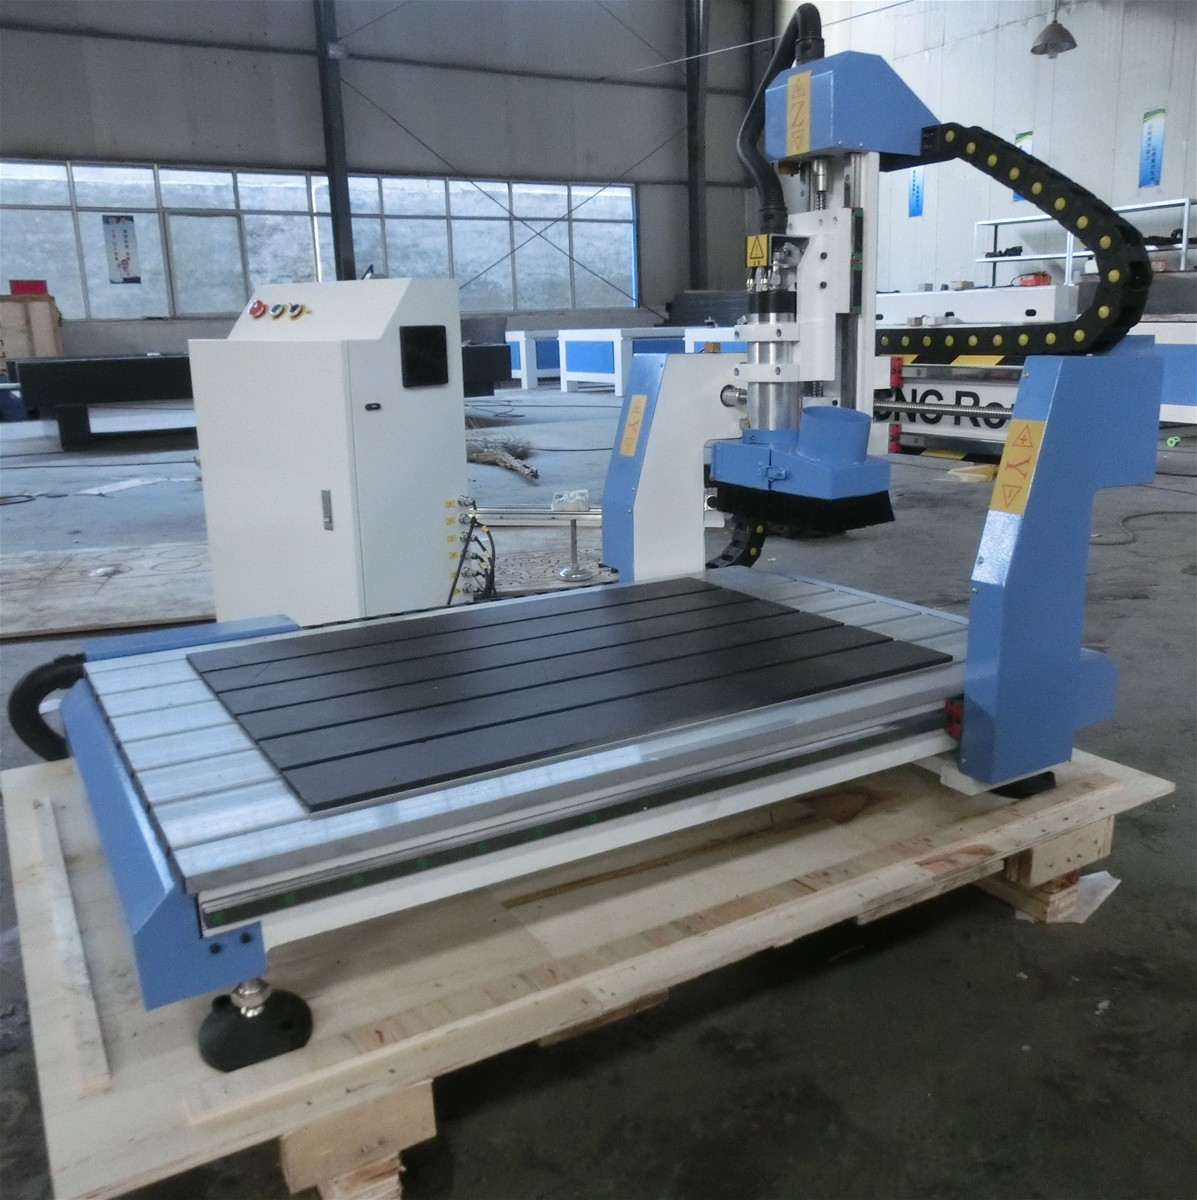 Desktop Cnc Router 6090 With 2 2kw Spindle Motor